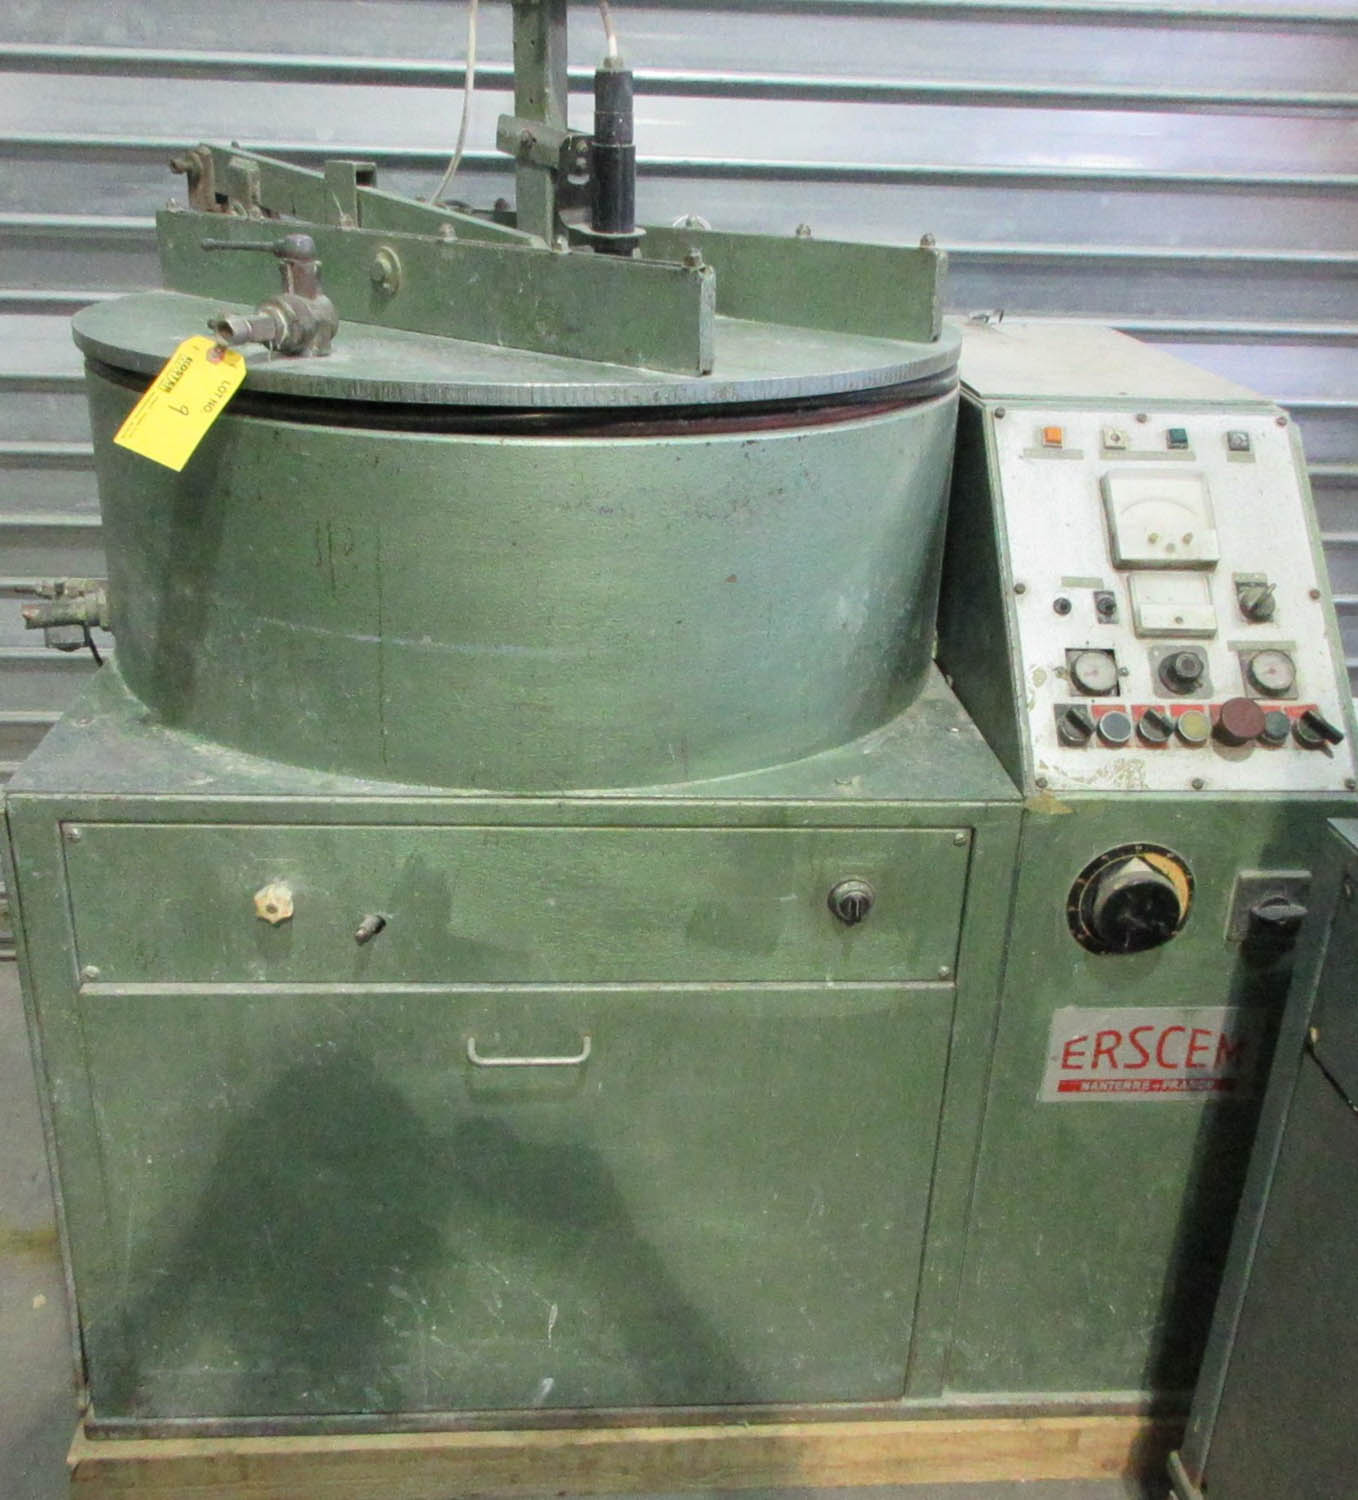 Lot 9 - ERSCEM KILN MDL. CV-23 ULTRA CAST CASTING MACHINE; 84 CM DIAMETER, S/N: 82889 (1989) [A#208][LOCATED